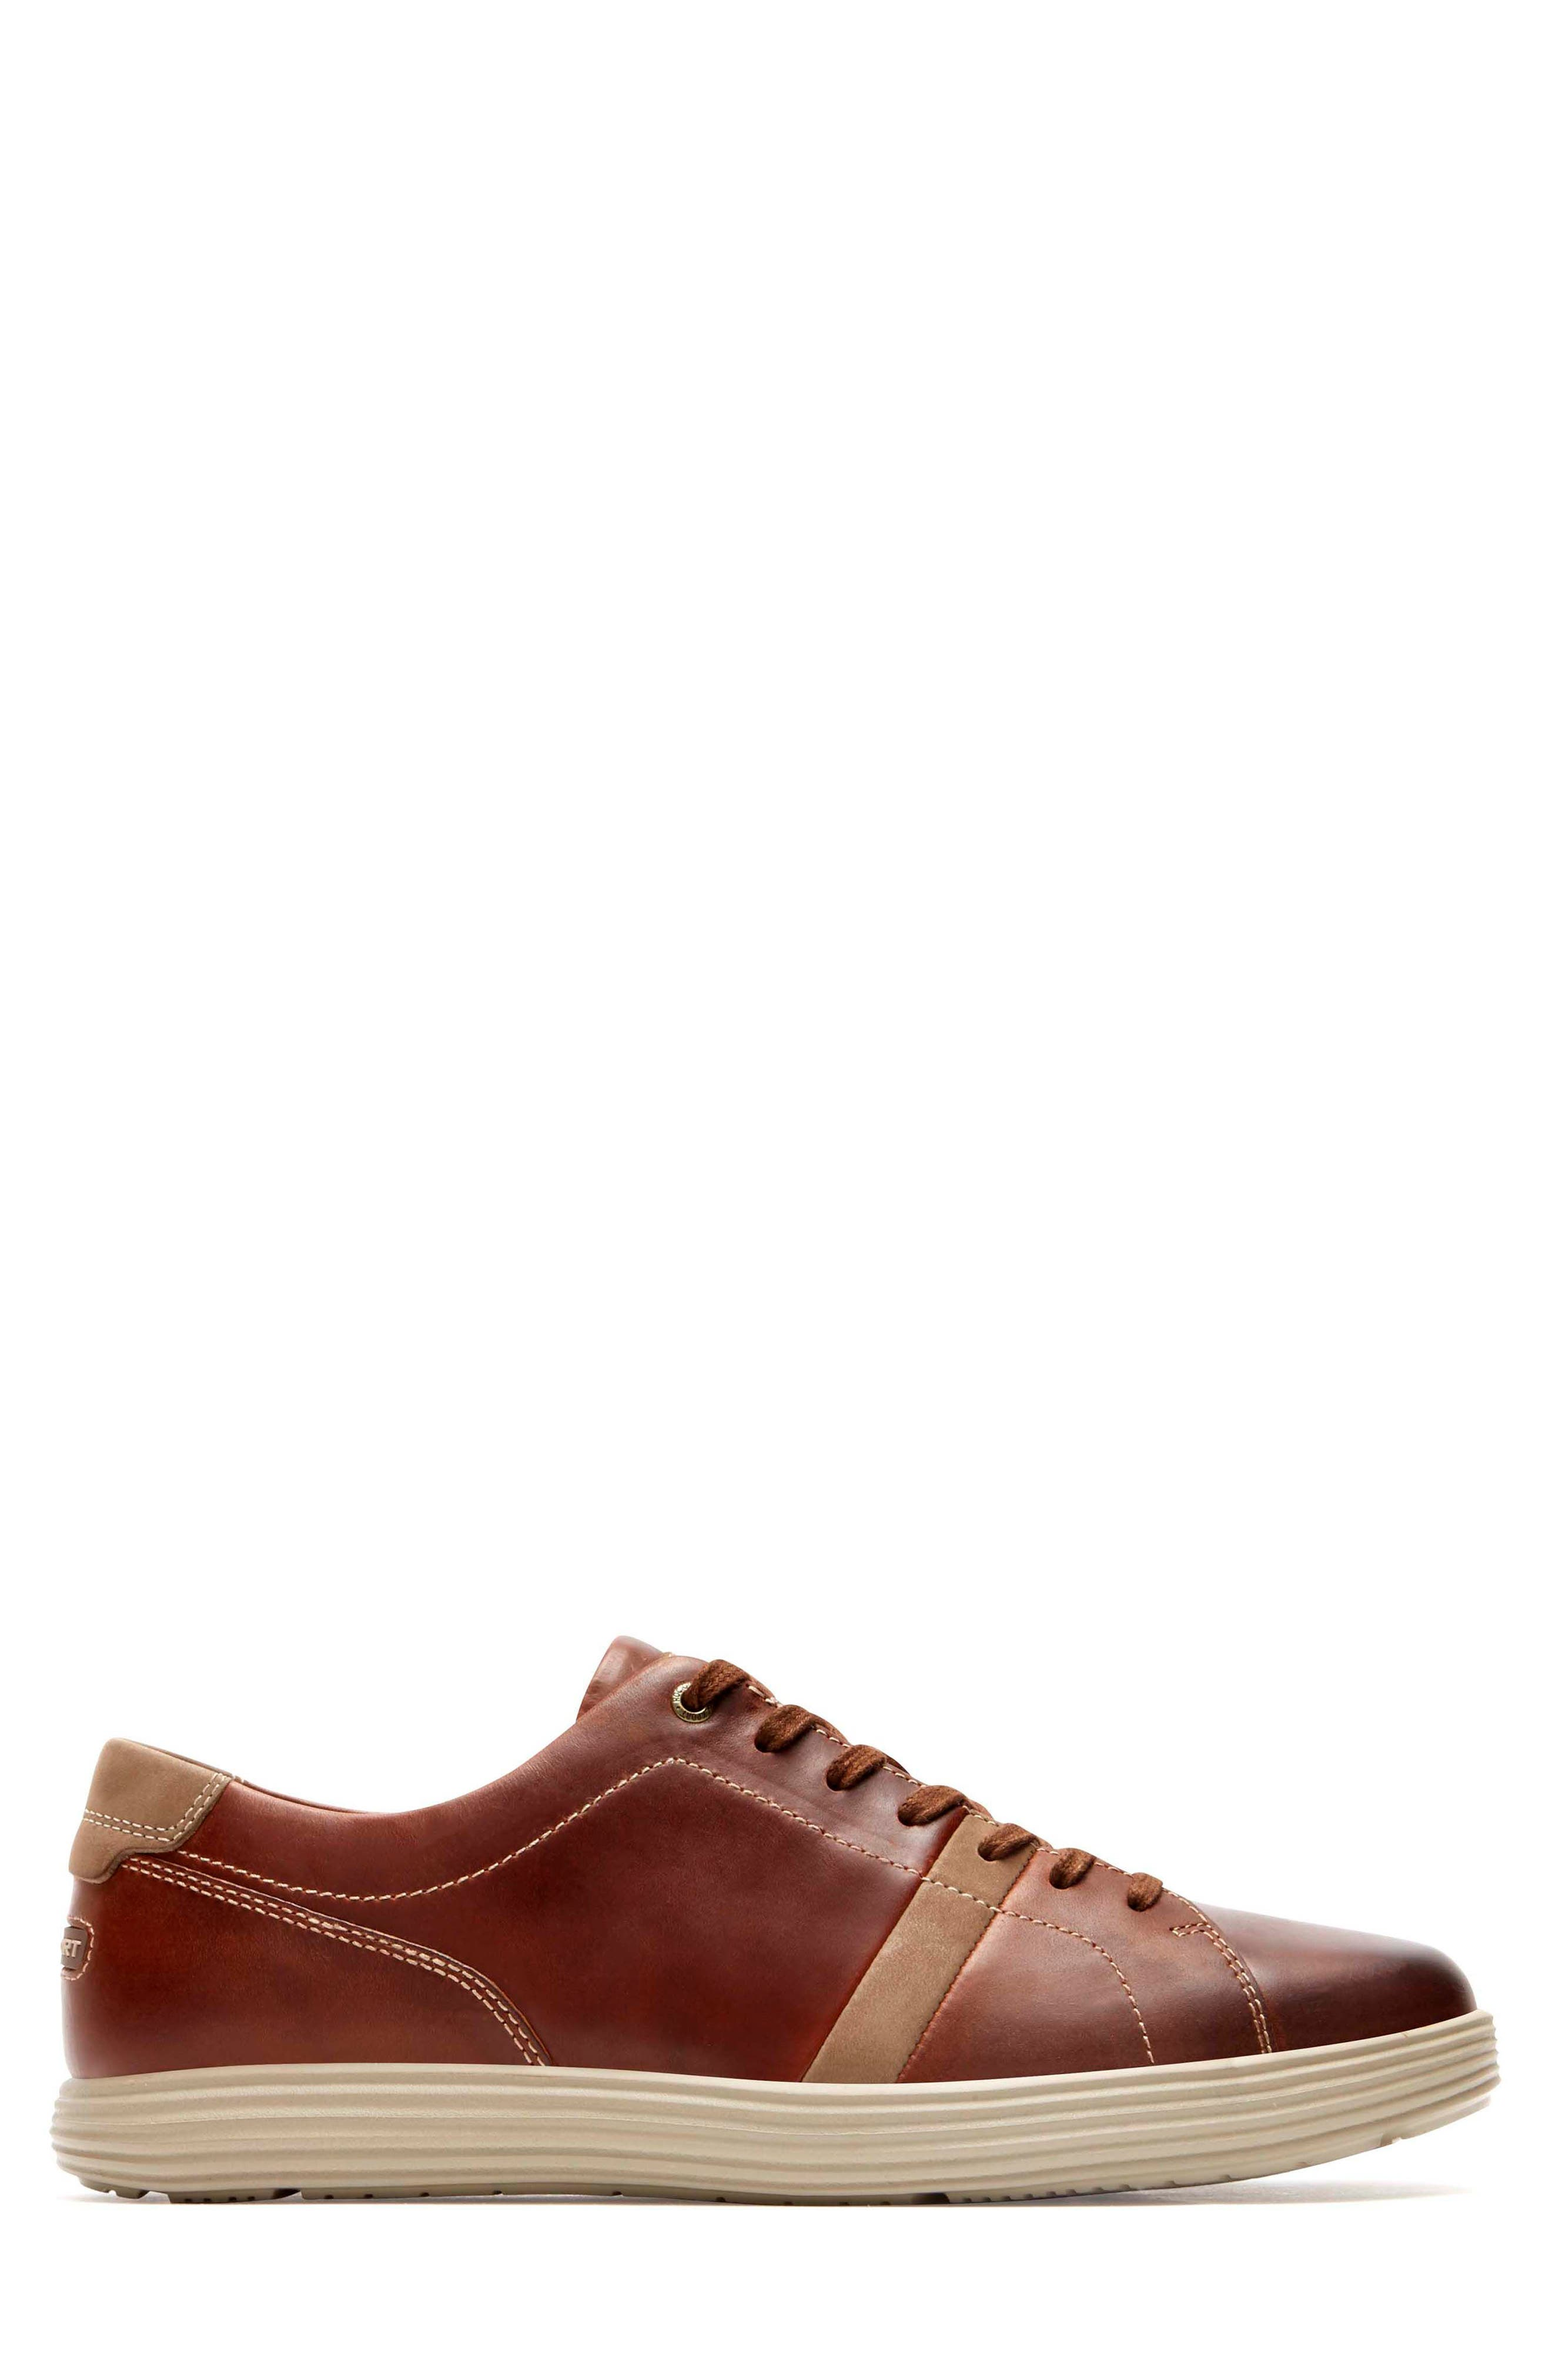 Thurston Sneaker,                             Alternate thumbnail 23, color,